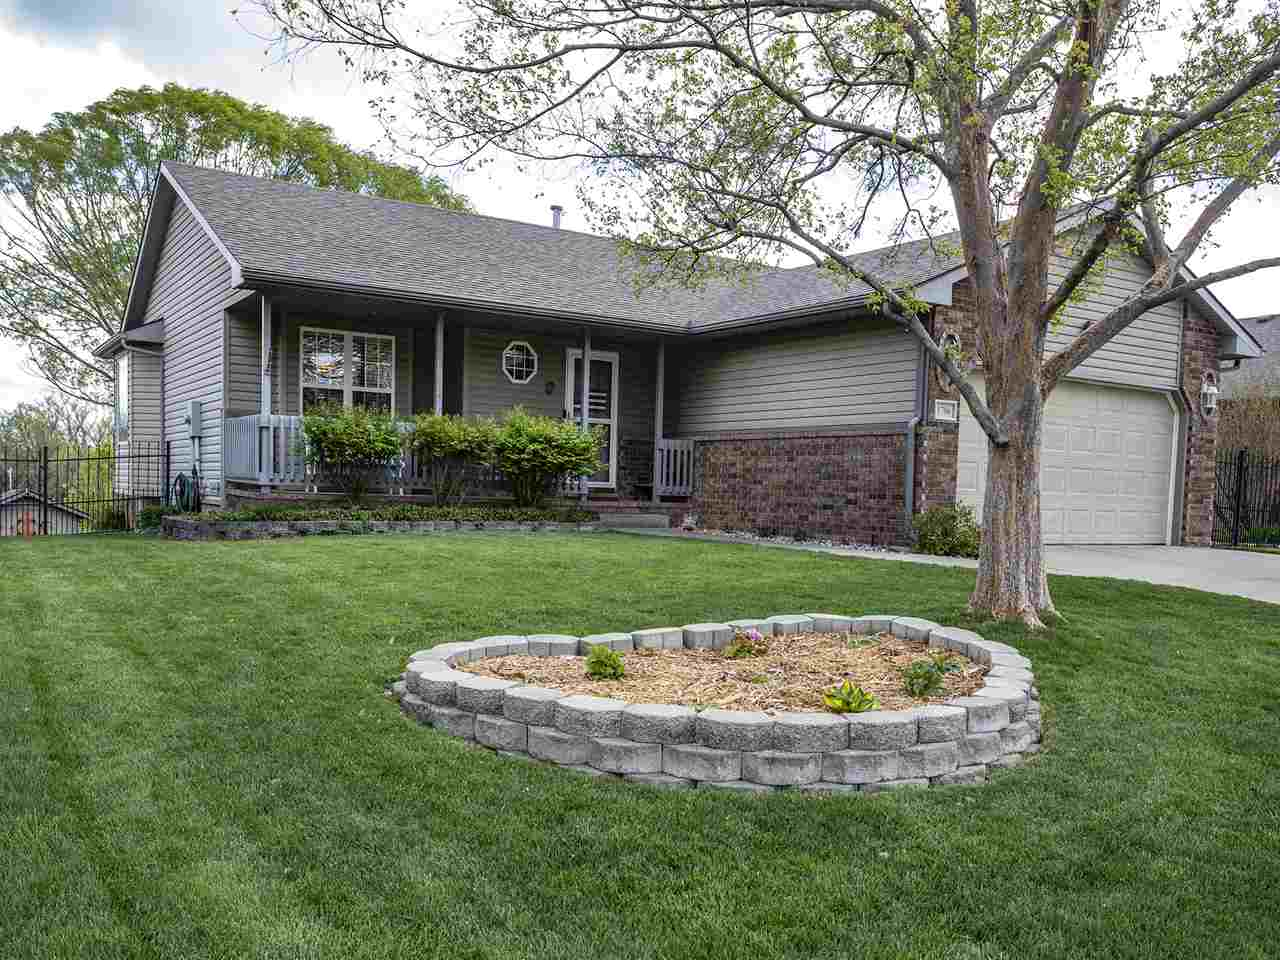 Come see this wonderful home with low maintenance permanent siding and walkout basement that backs t